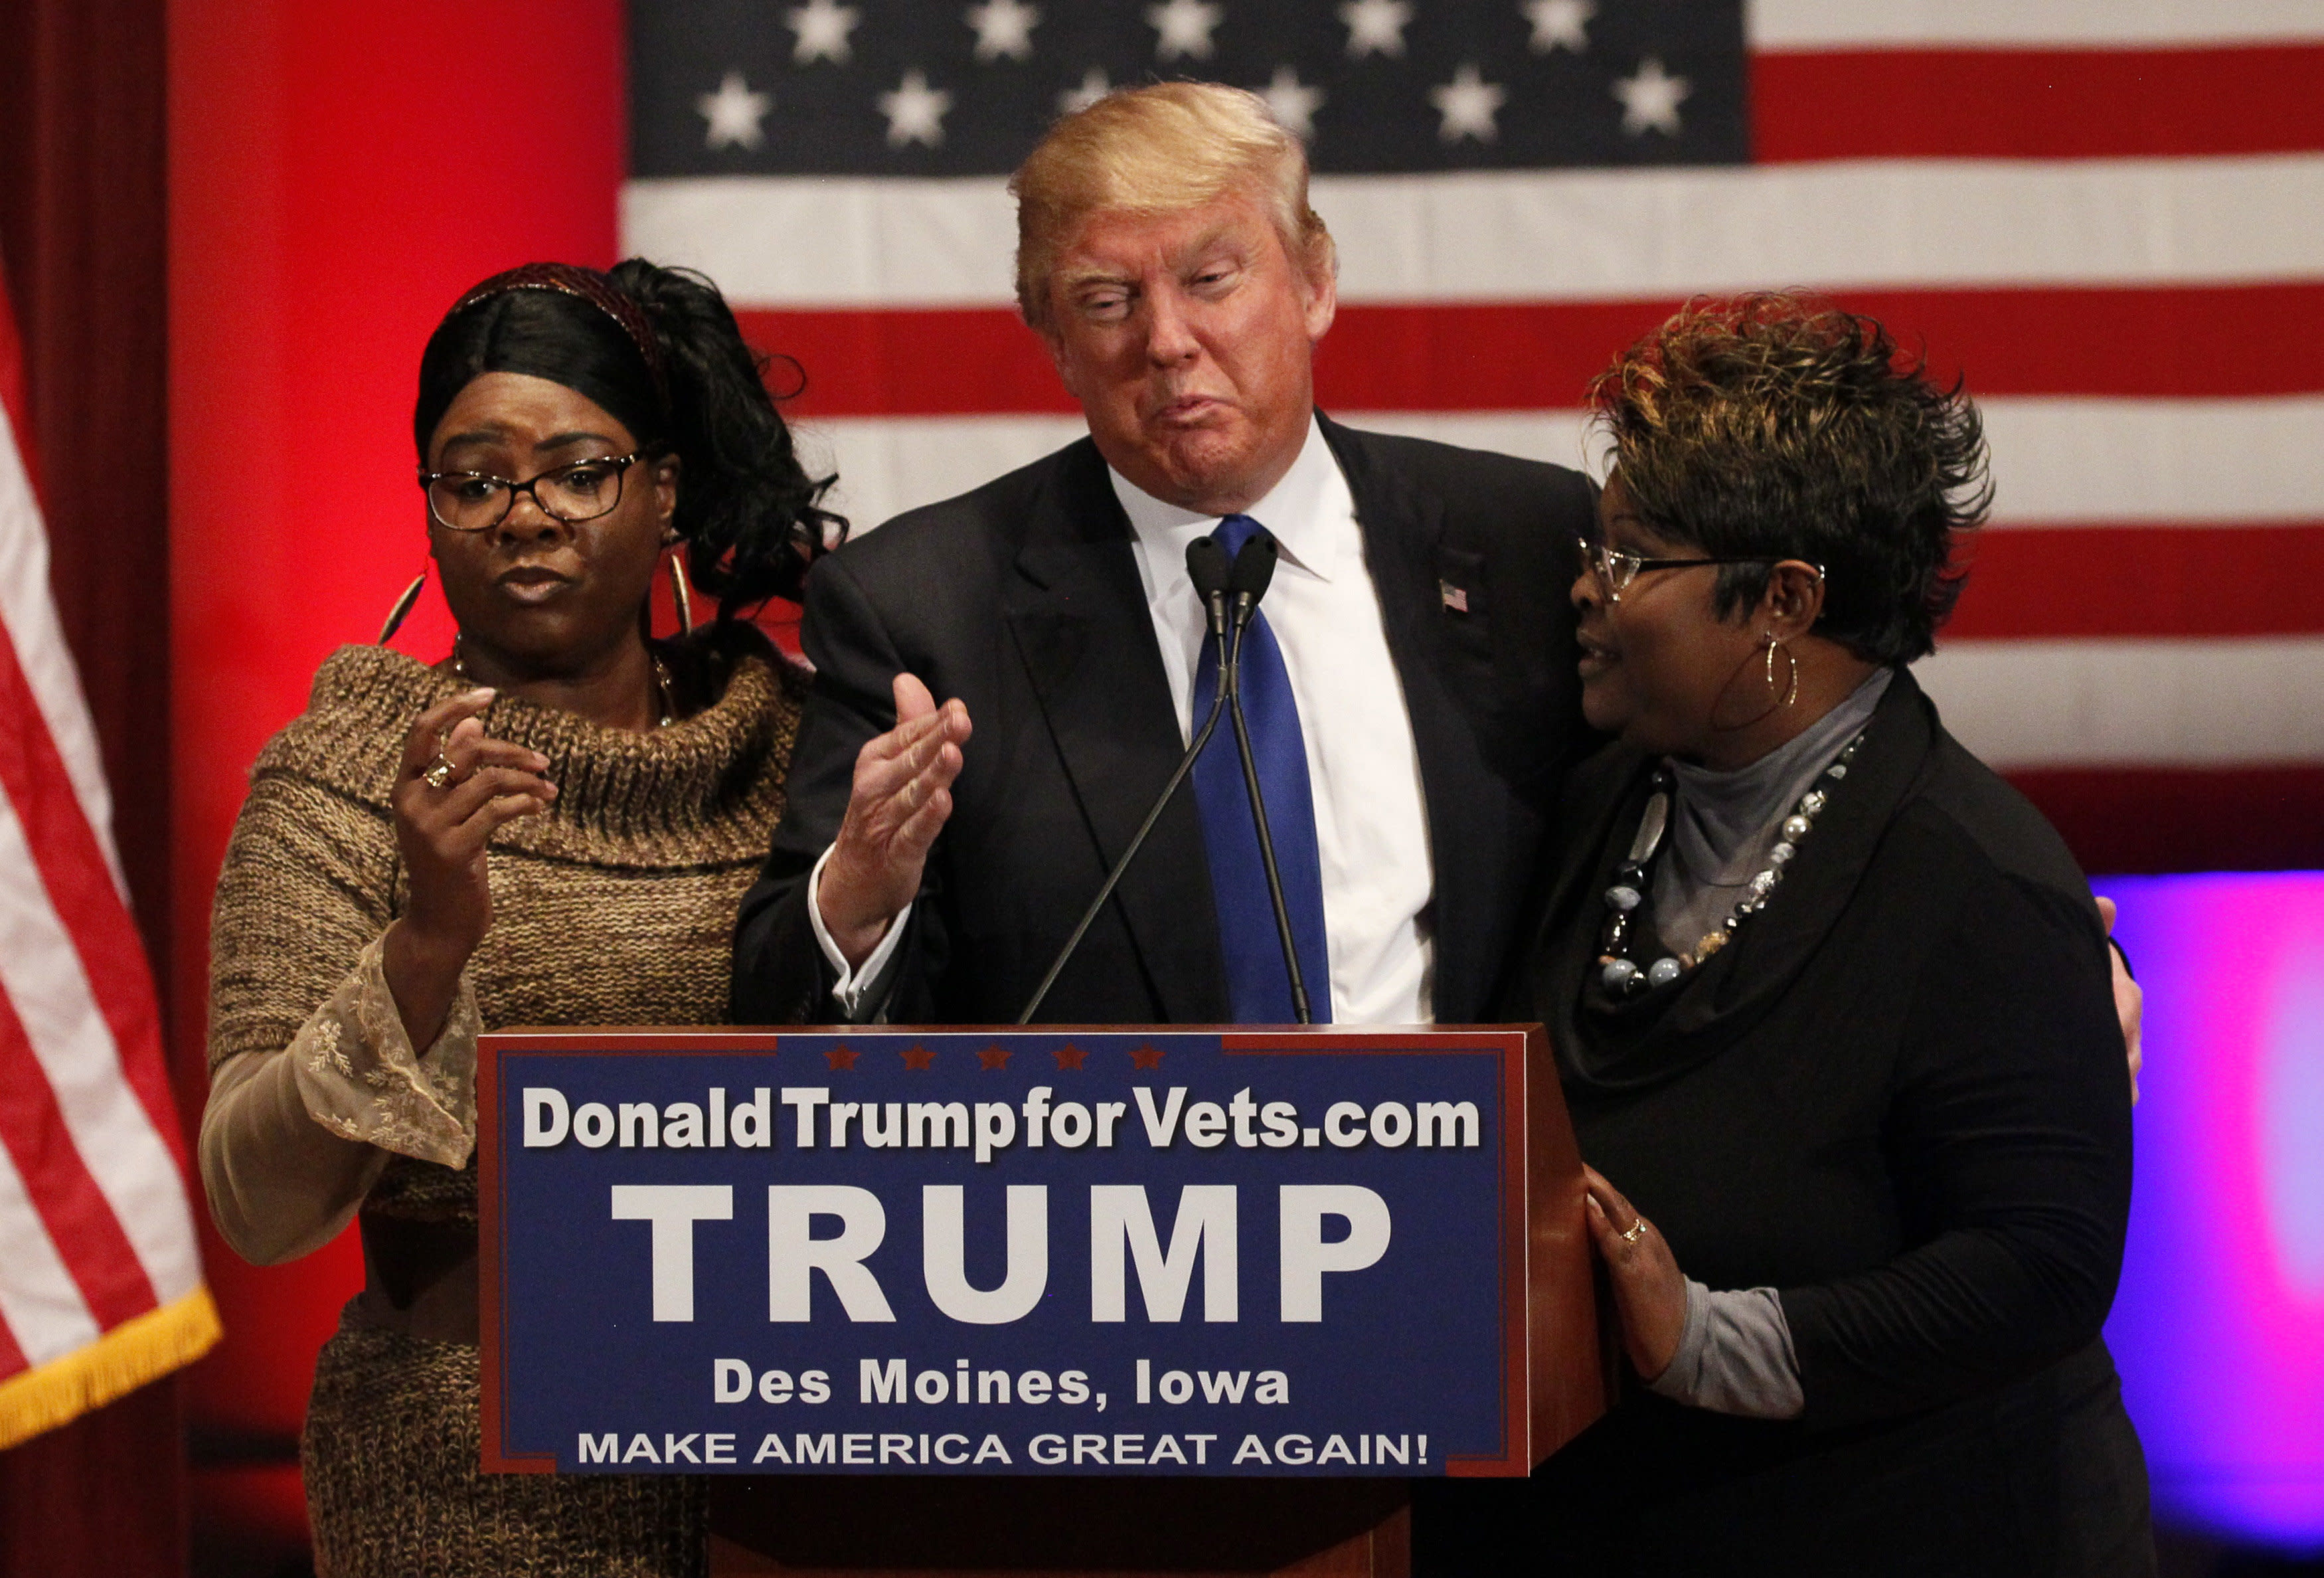 """The YouTube stars known as """"Diamond and Silk"""" appear with Donald Trump during his presidentialcampaign. (Rick Wilking / Reuters)"""